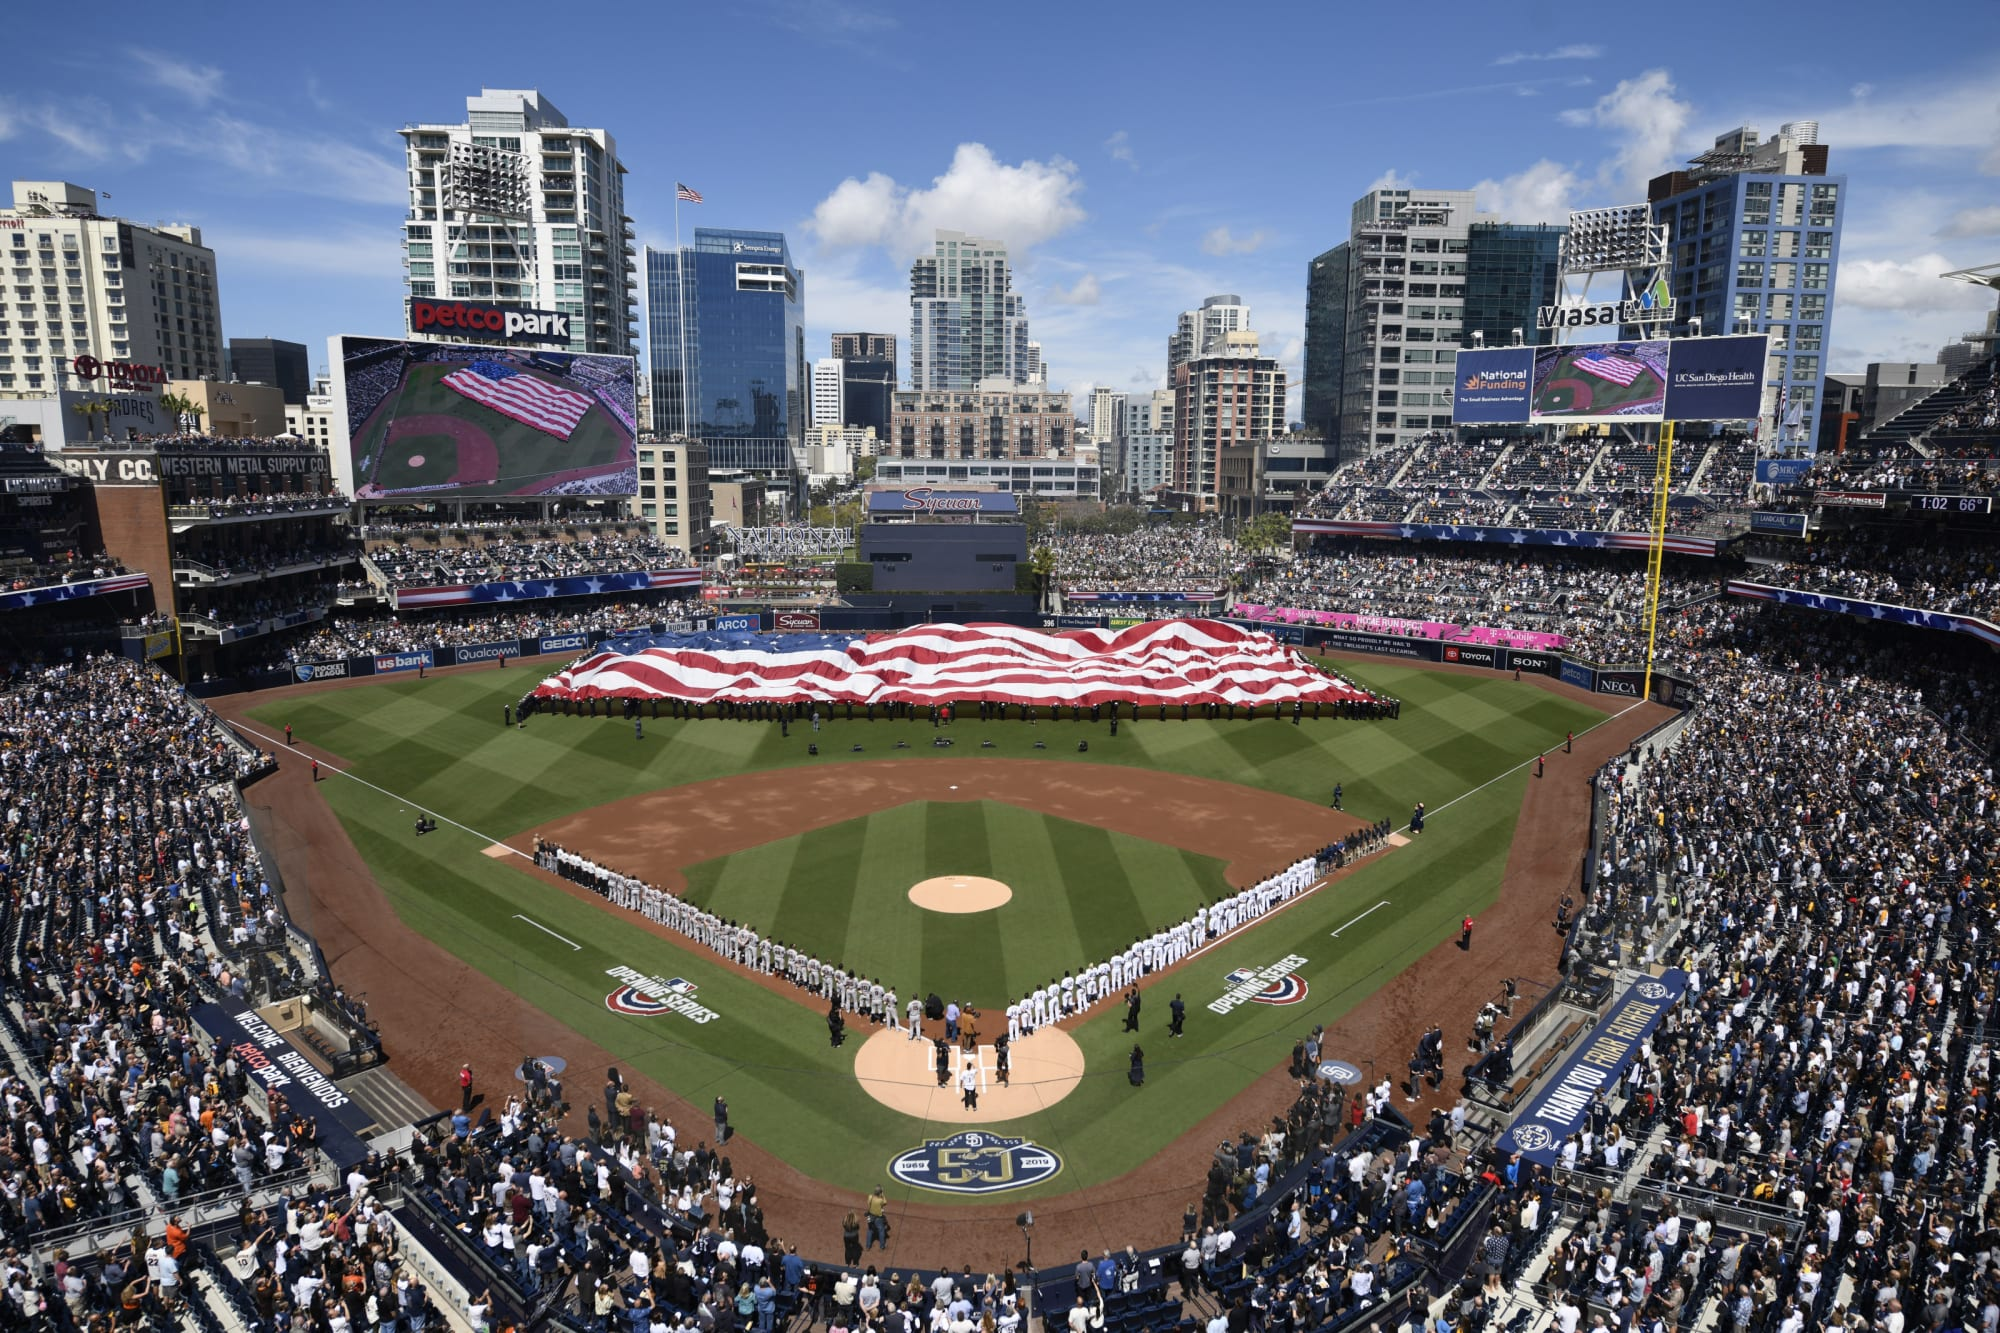 San Diego Padres: When is Opening Day 2021?